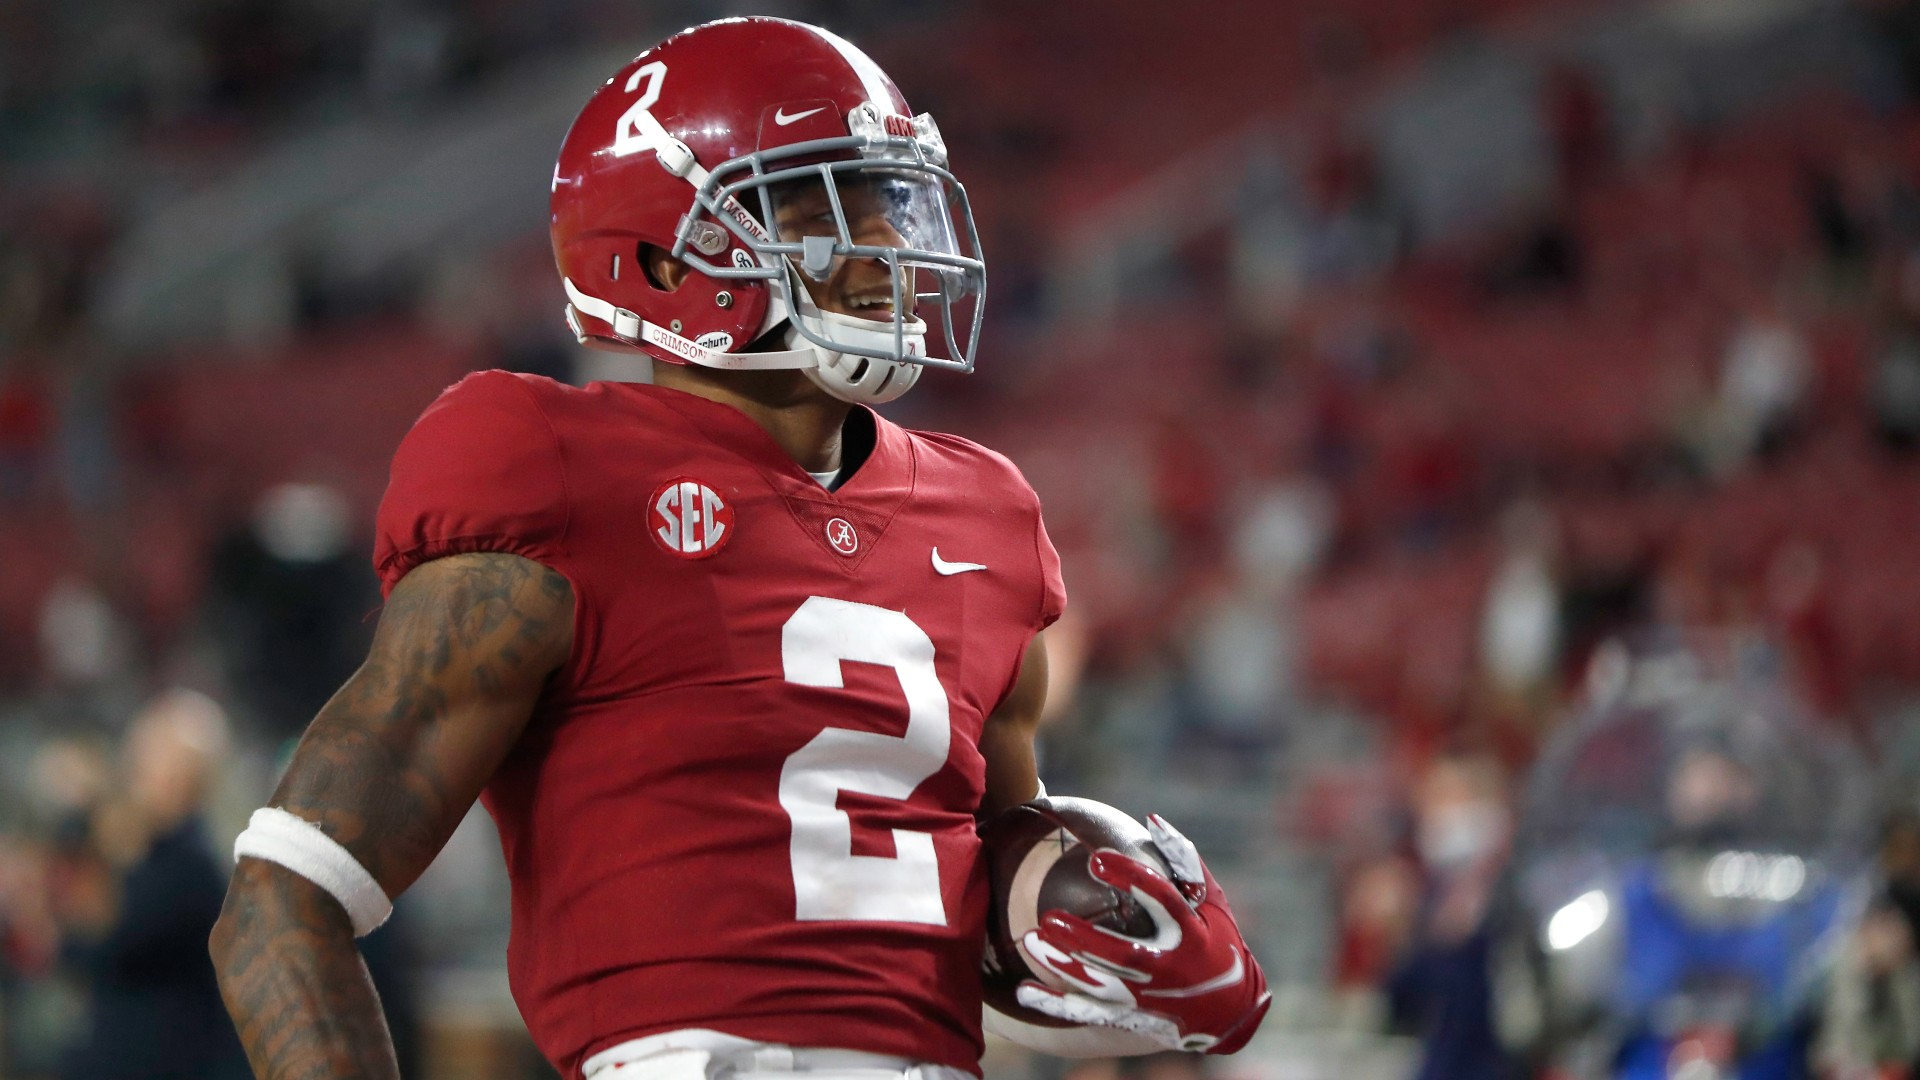 College Football Odds & Picks for Kentucky vs. Alabama: Saturday's Betting Value on Over/Under article feature image